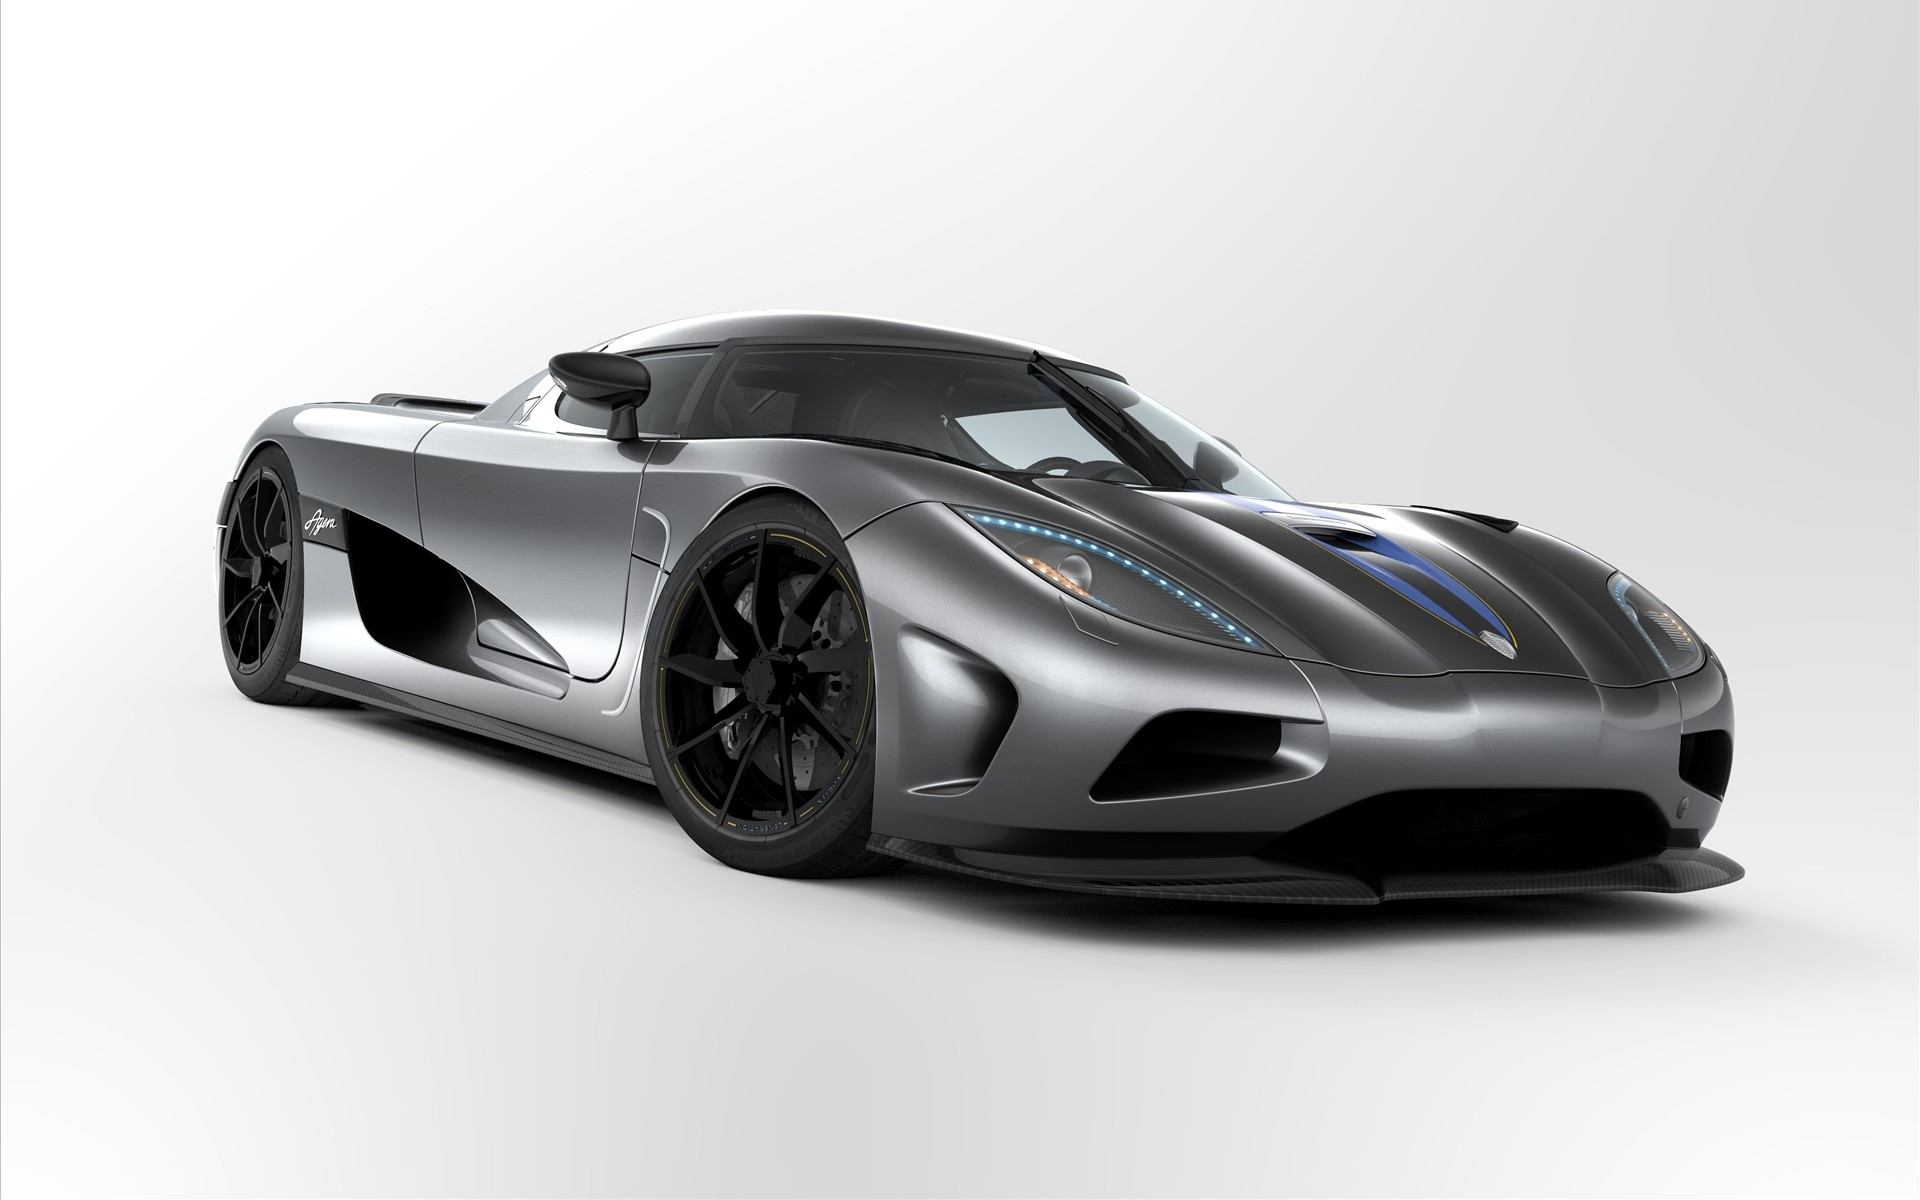 Koenigsegg agera HD (High Definition) Wallpaper/Background, HD Wallpapers  and Backgrounds